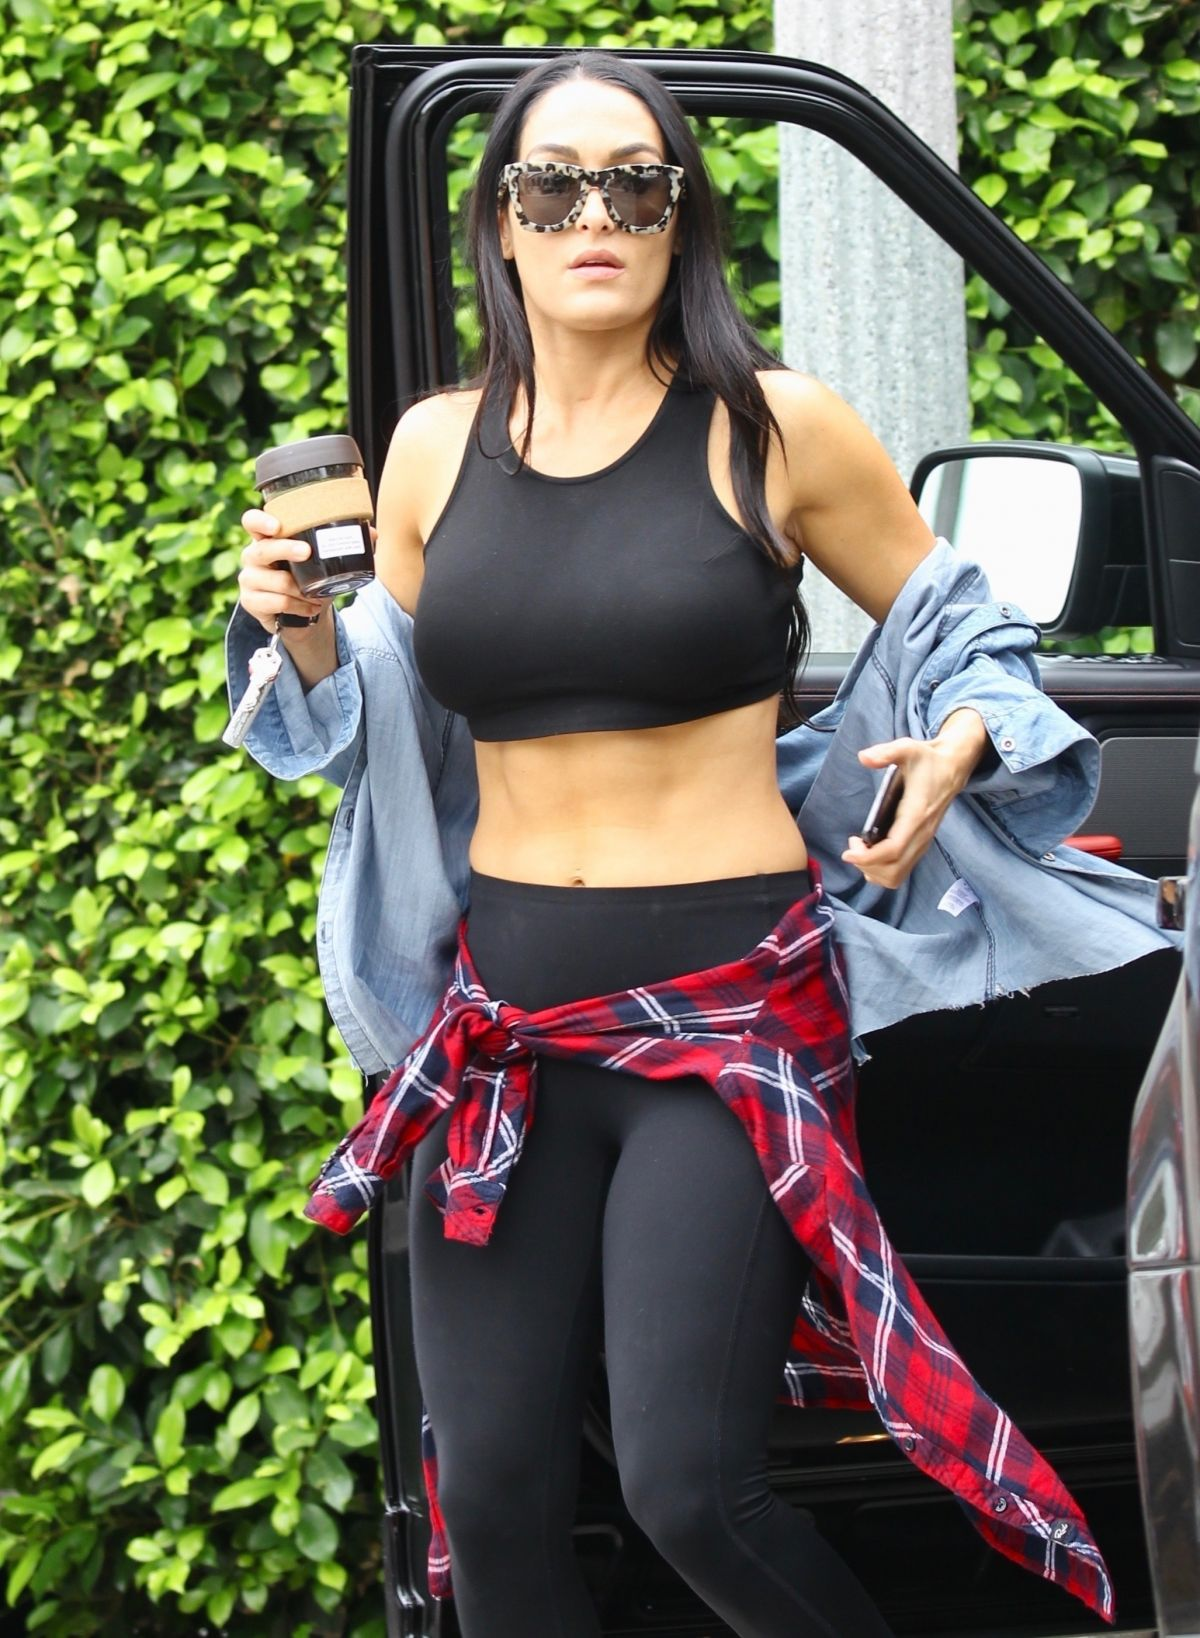 NIKKI BELLA Out and About in Studio City 06/20/2019 – HawtCelebs